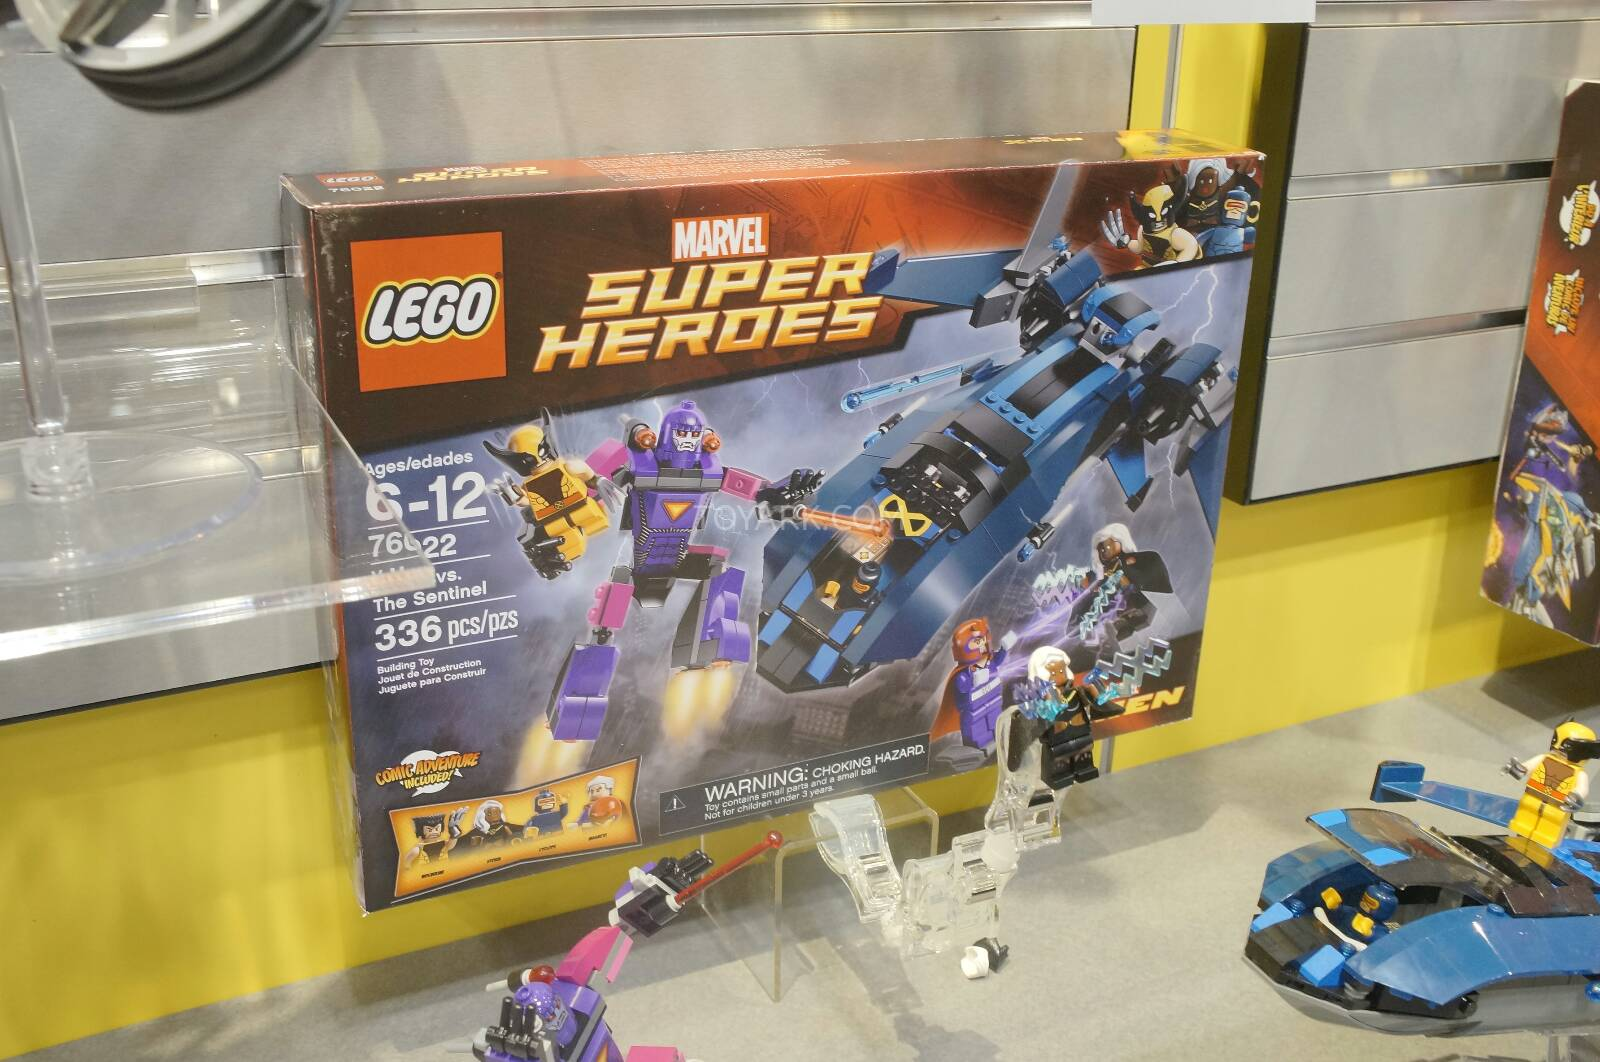 Lego Marvel Super Heroes Sets At 2014 New York Toy Fair